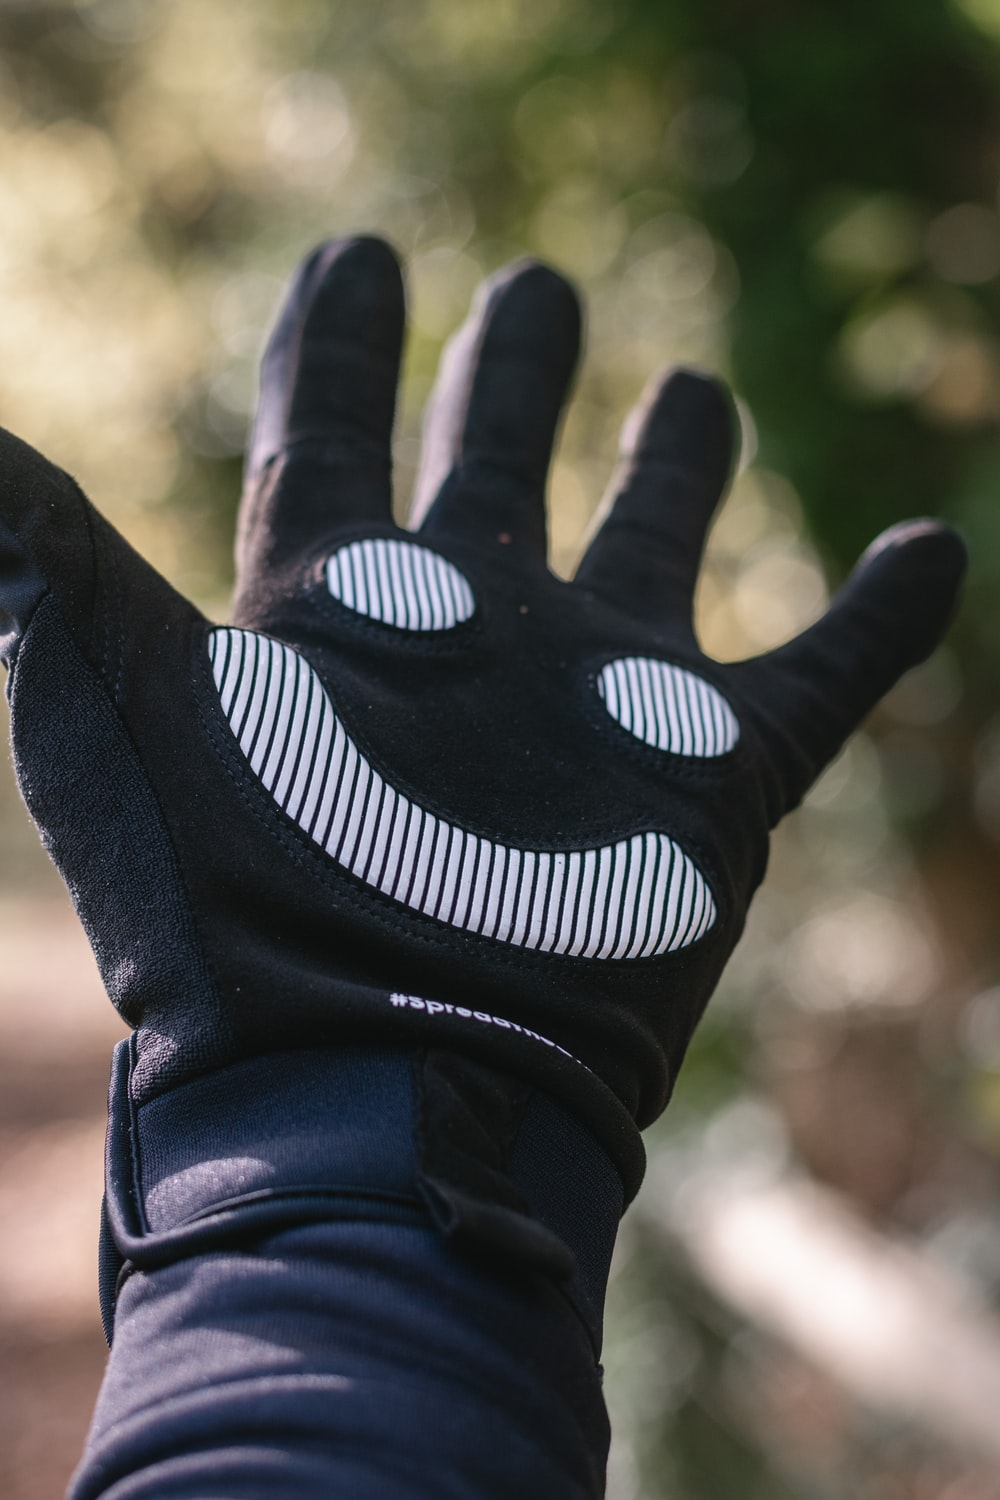 person wearing black and white nike gloves